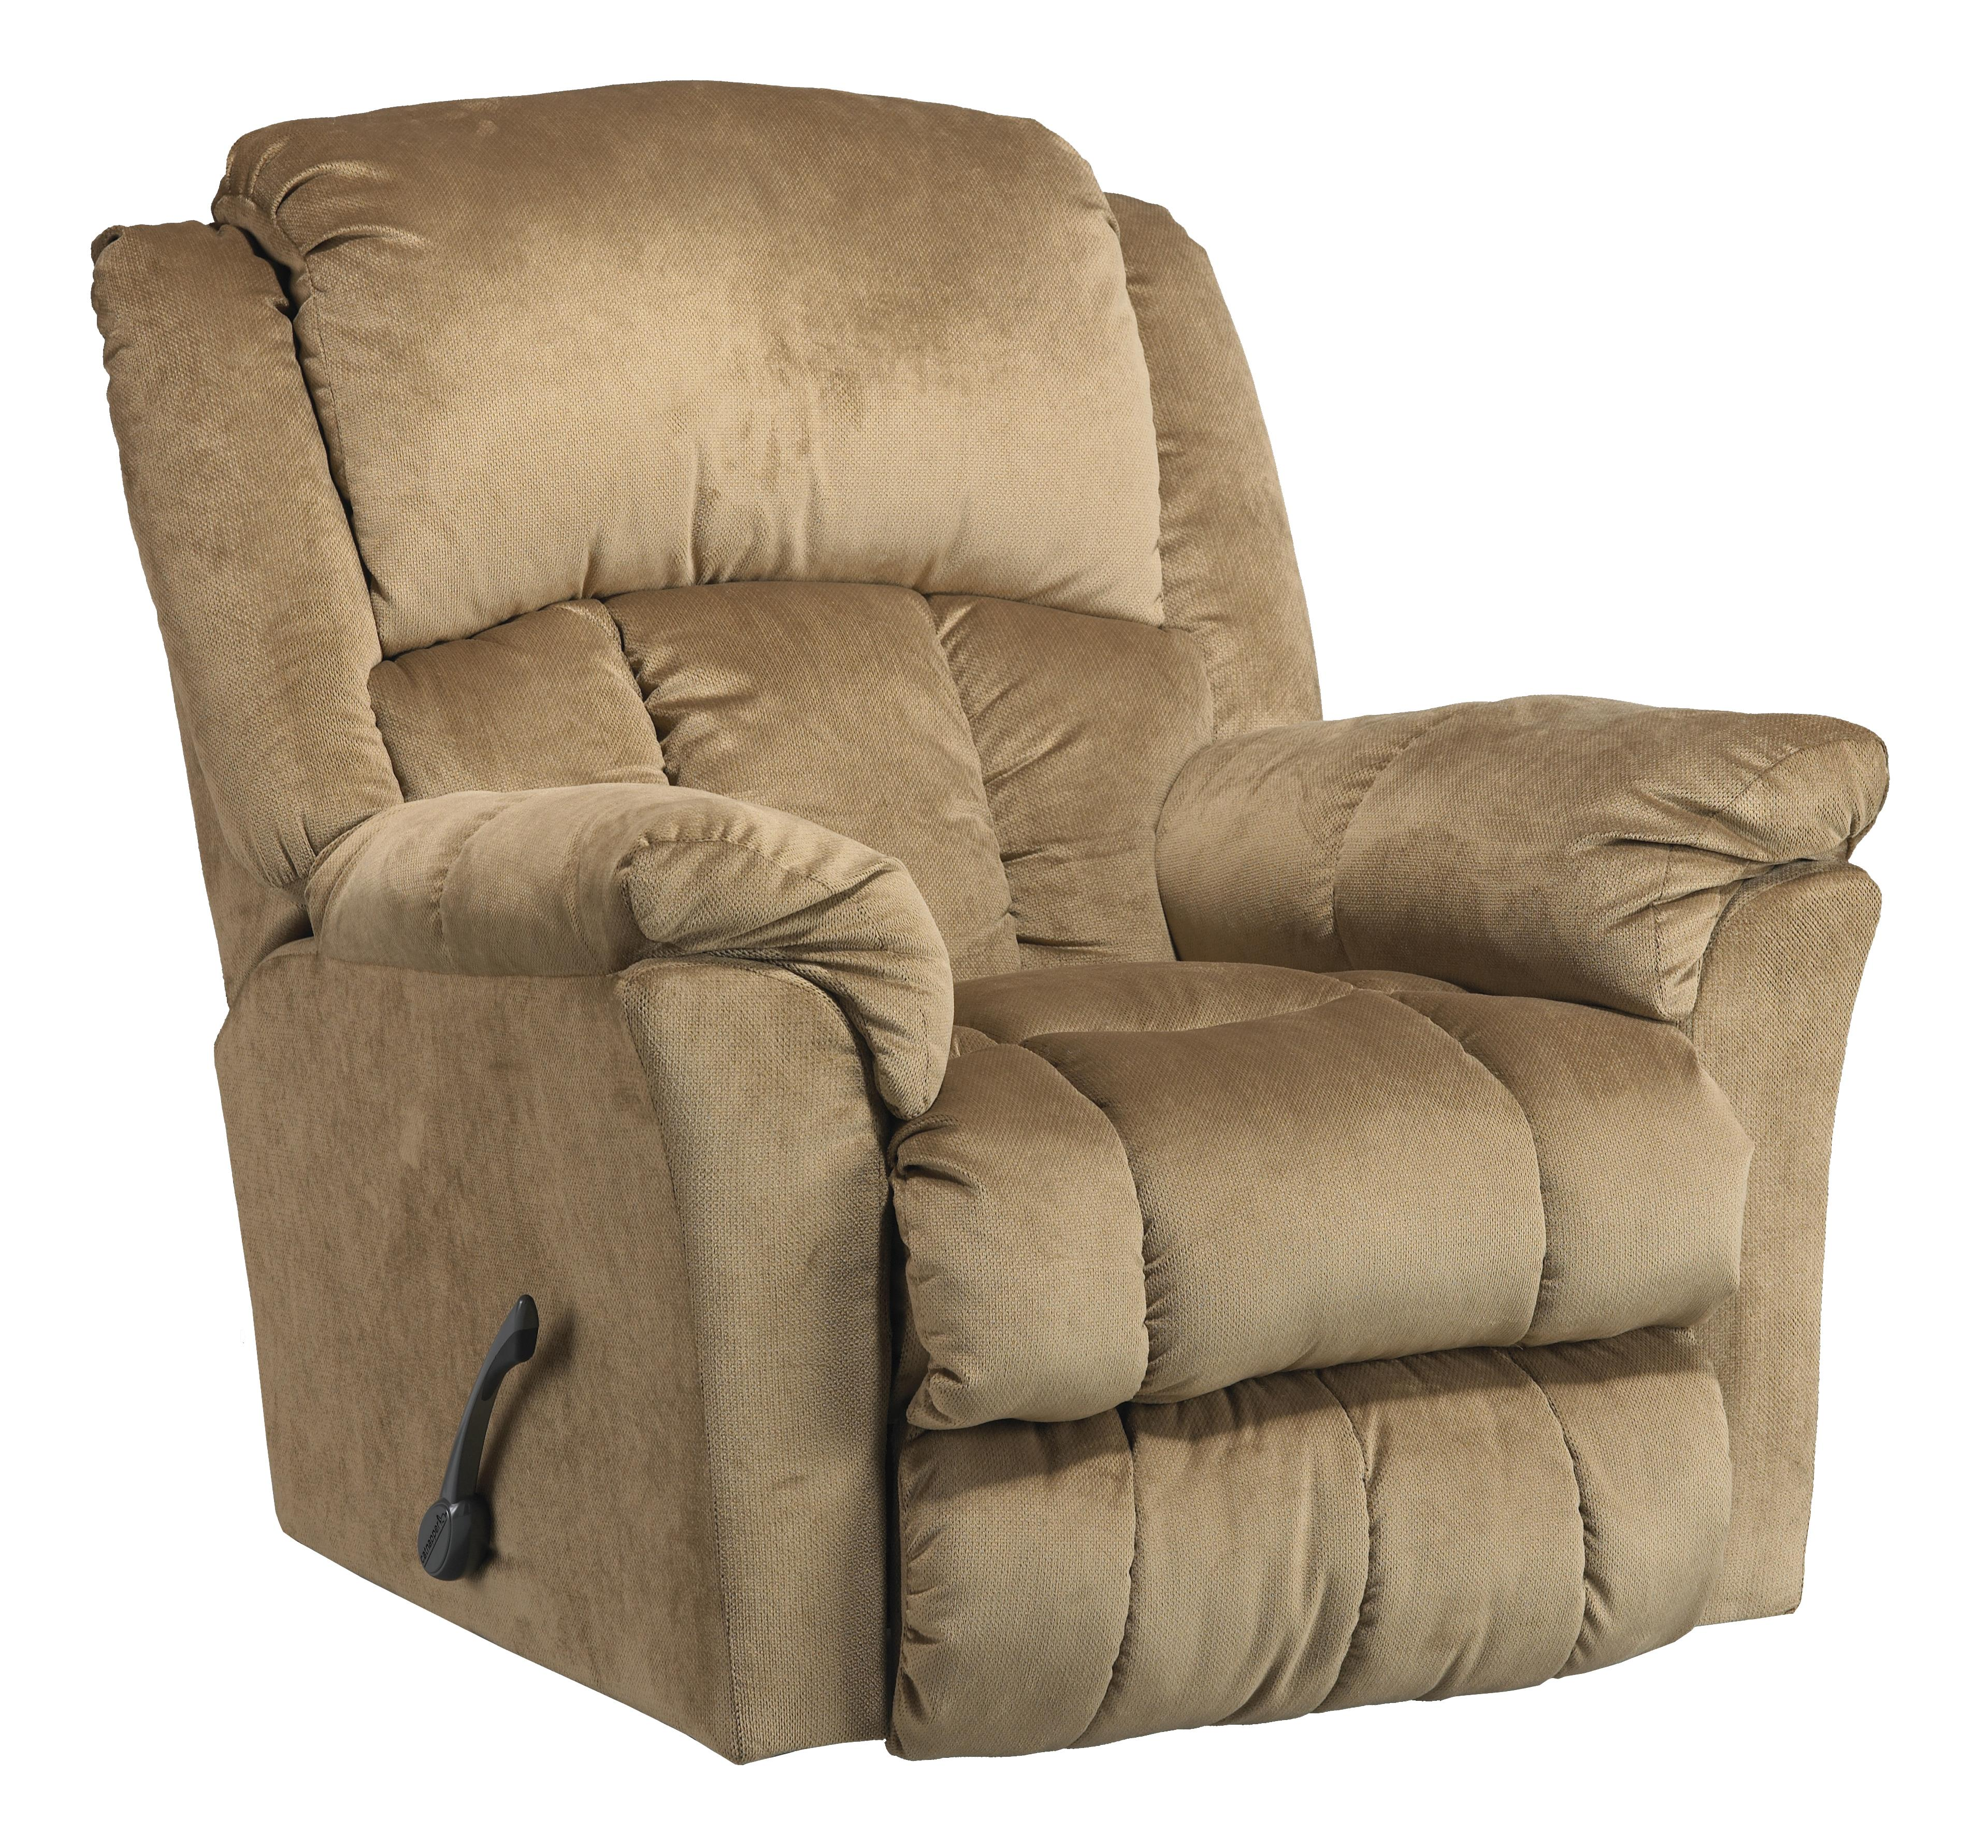 Catnapper Motion Chairs and Recliners Gibson Lay Flat Recliner - Item Number: 4516-7-1831-36